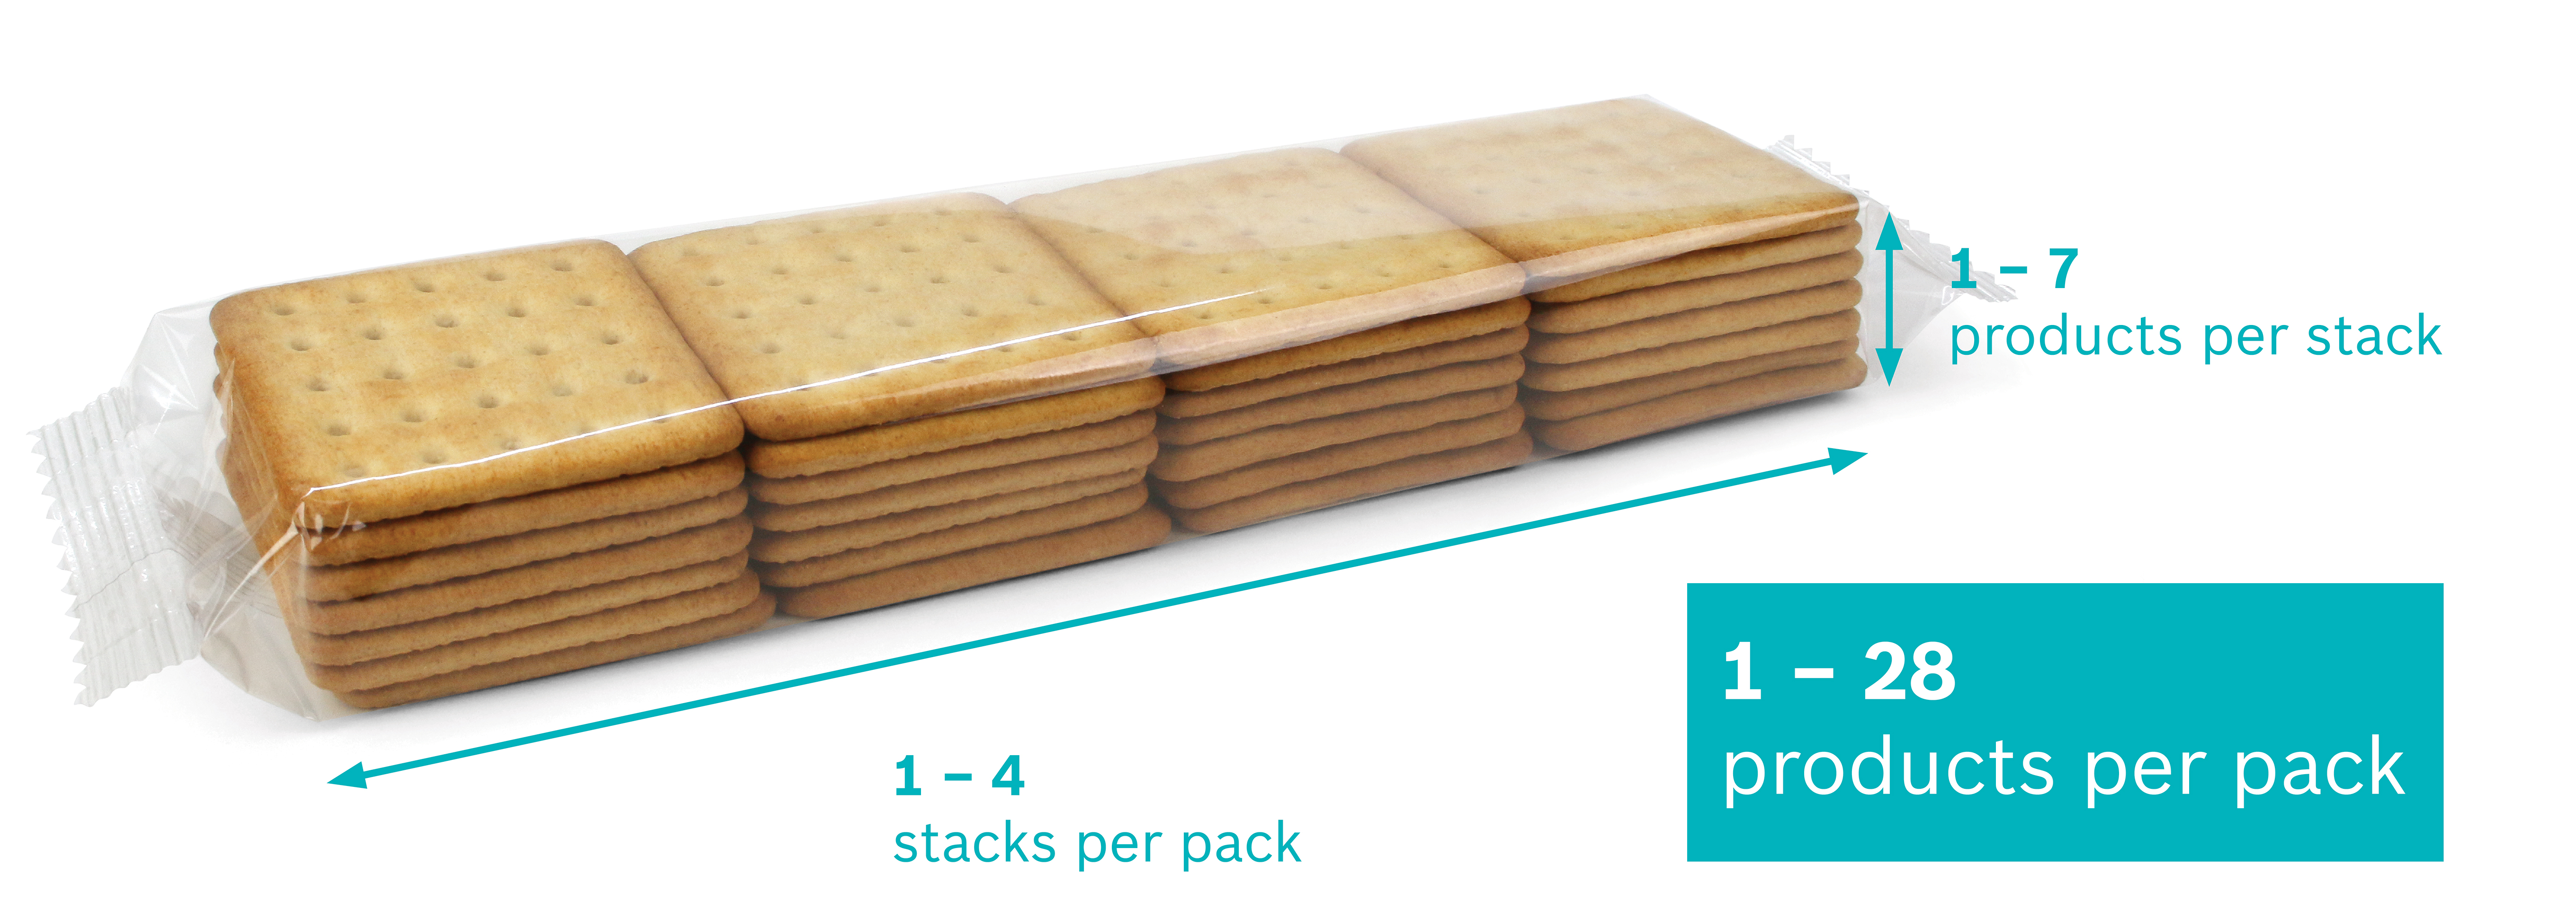 Flexible format configurations of products per pack